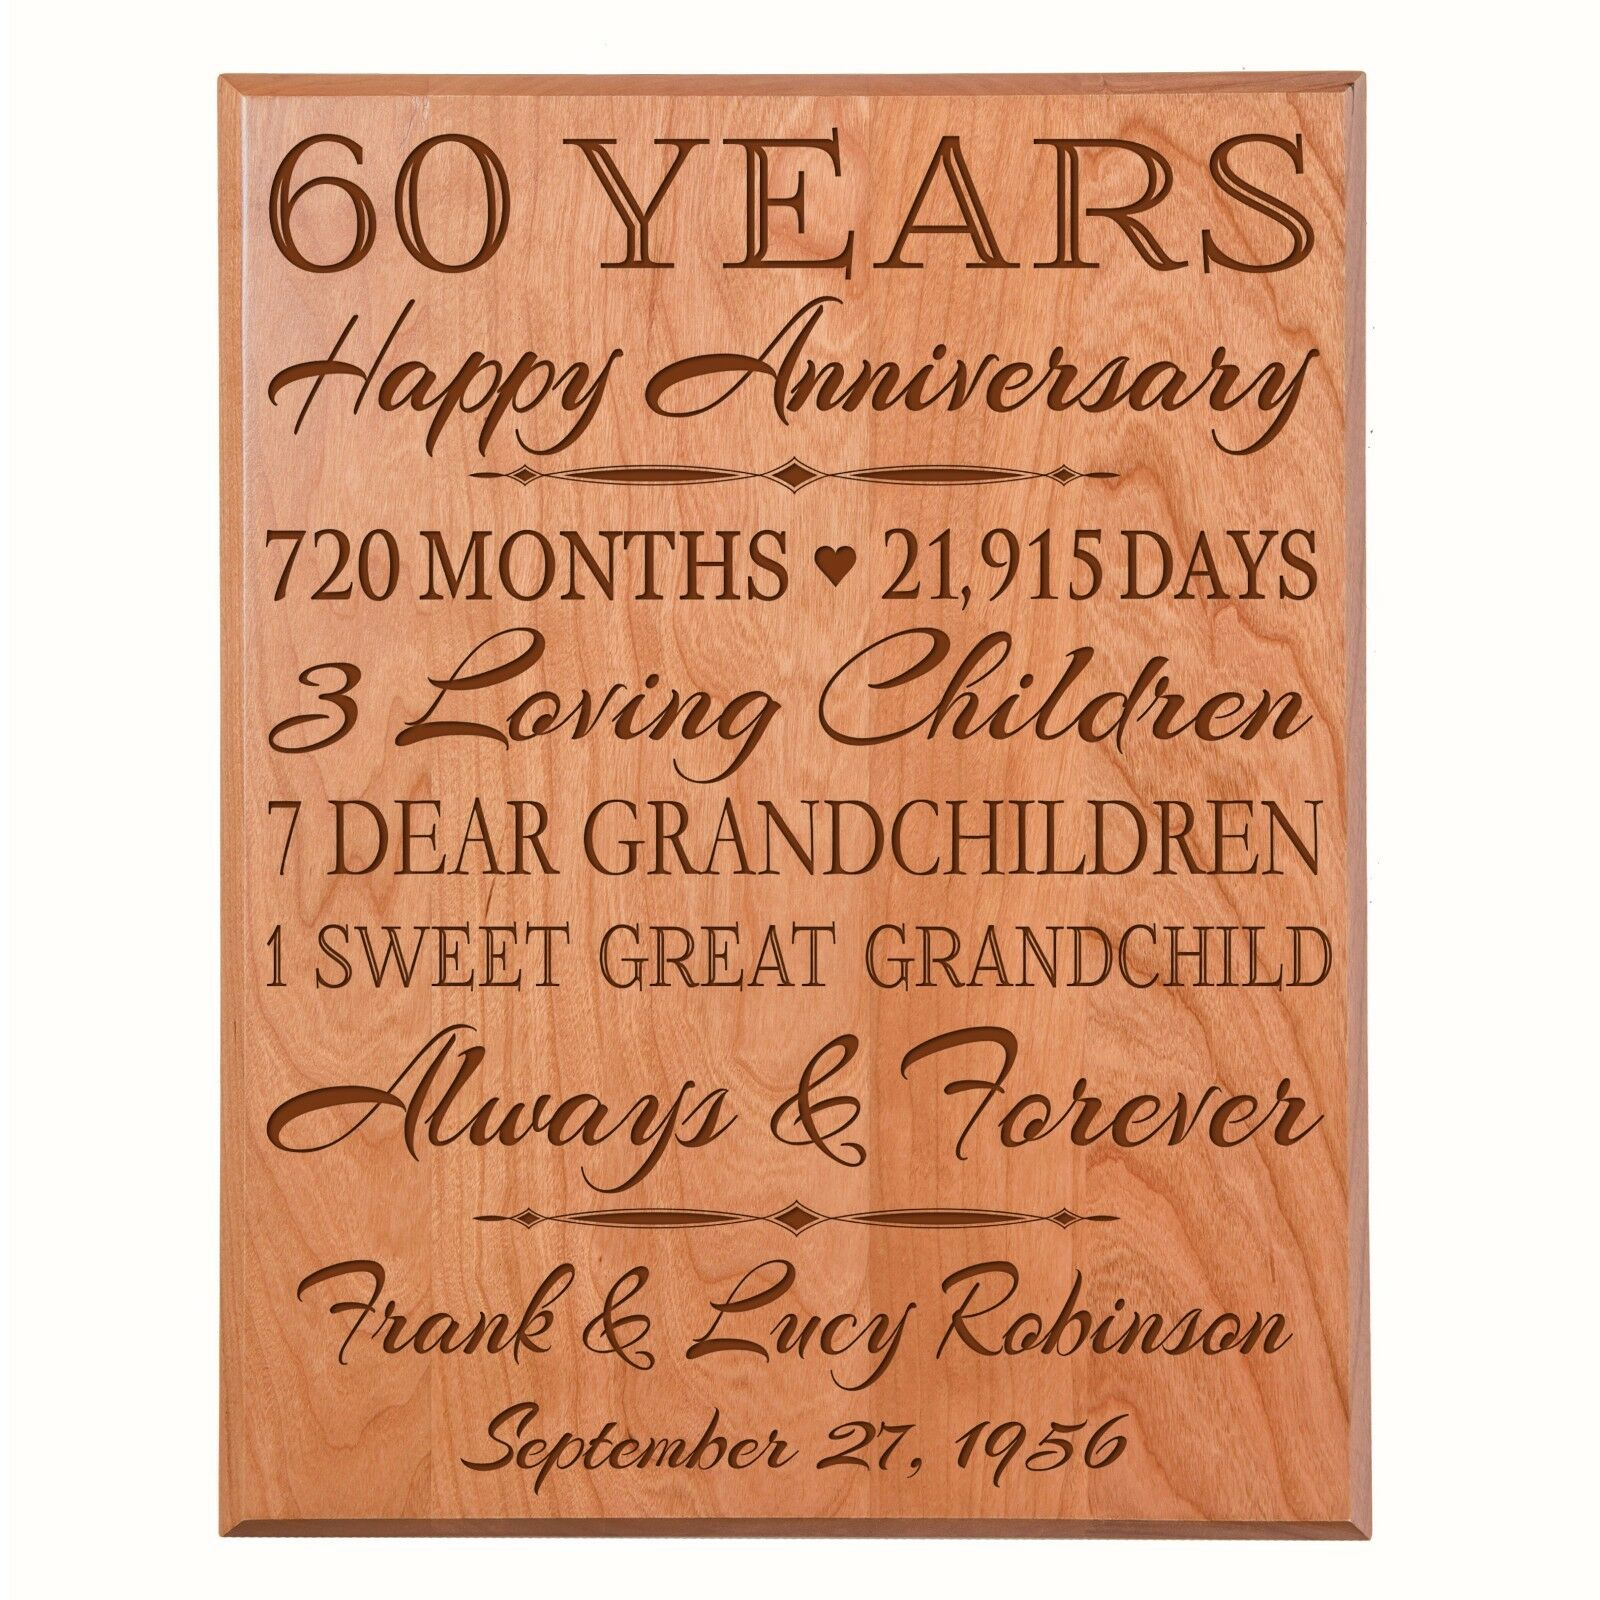 60th Wedding Anniversary Gift Wooden Wall Hanging  Plaque Sign Art Decor